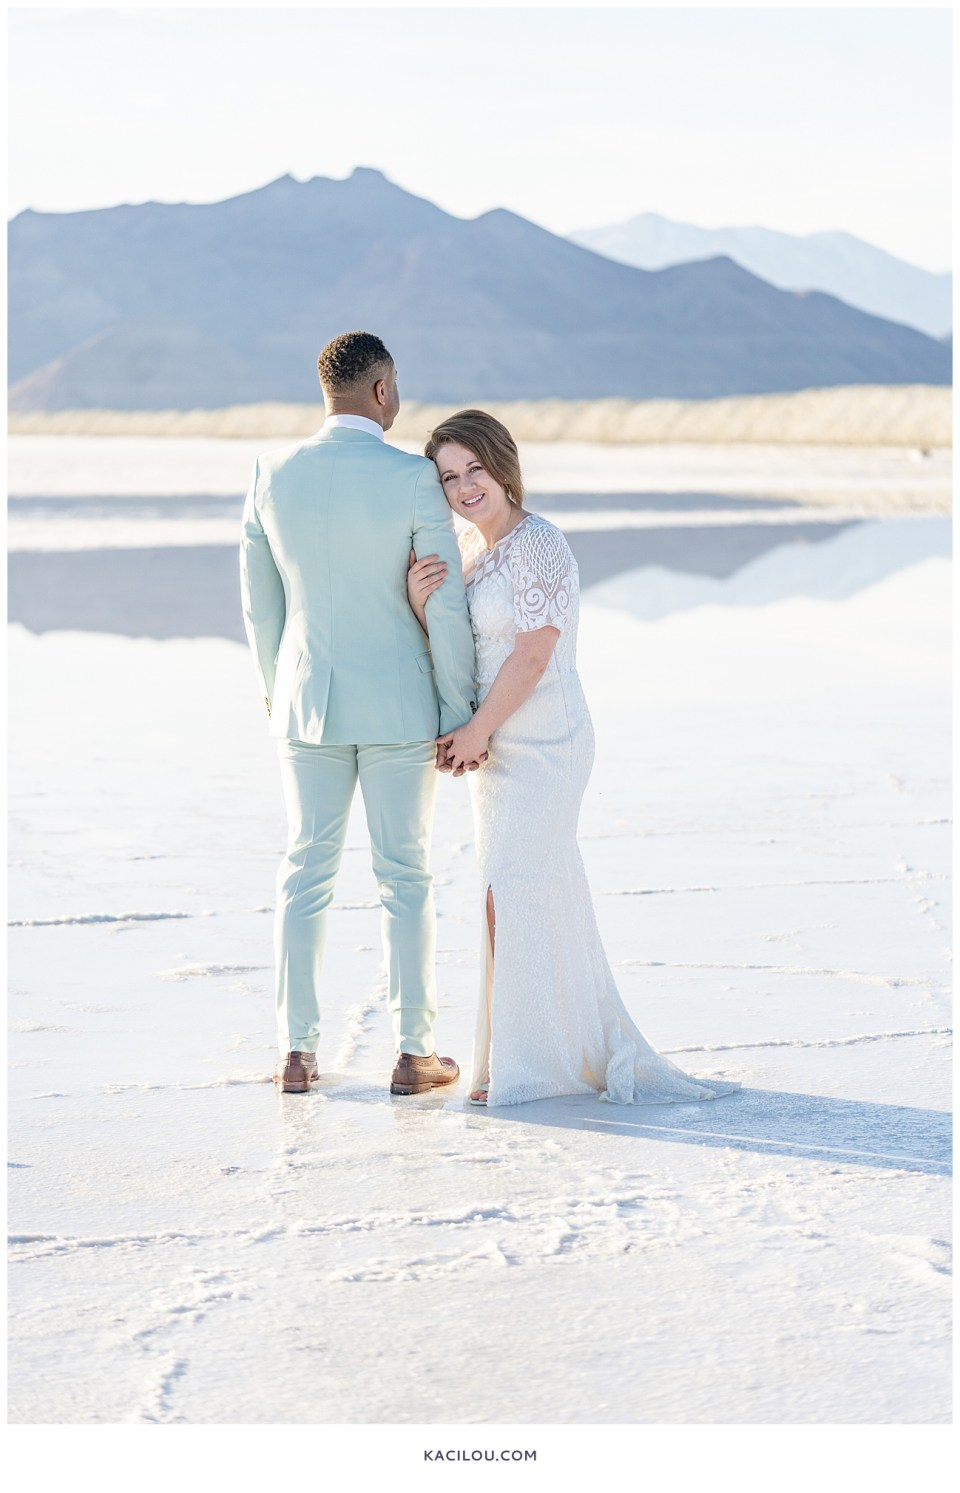 salt flats utah elopement tuesdae and ethan by kaci lou photography-111.jpg